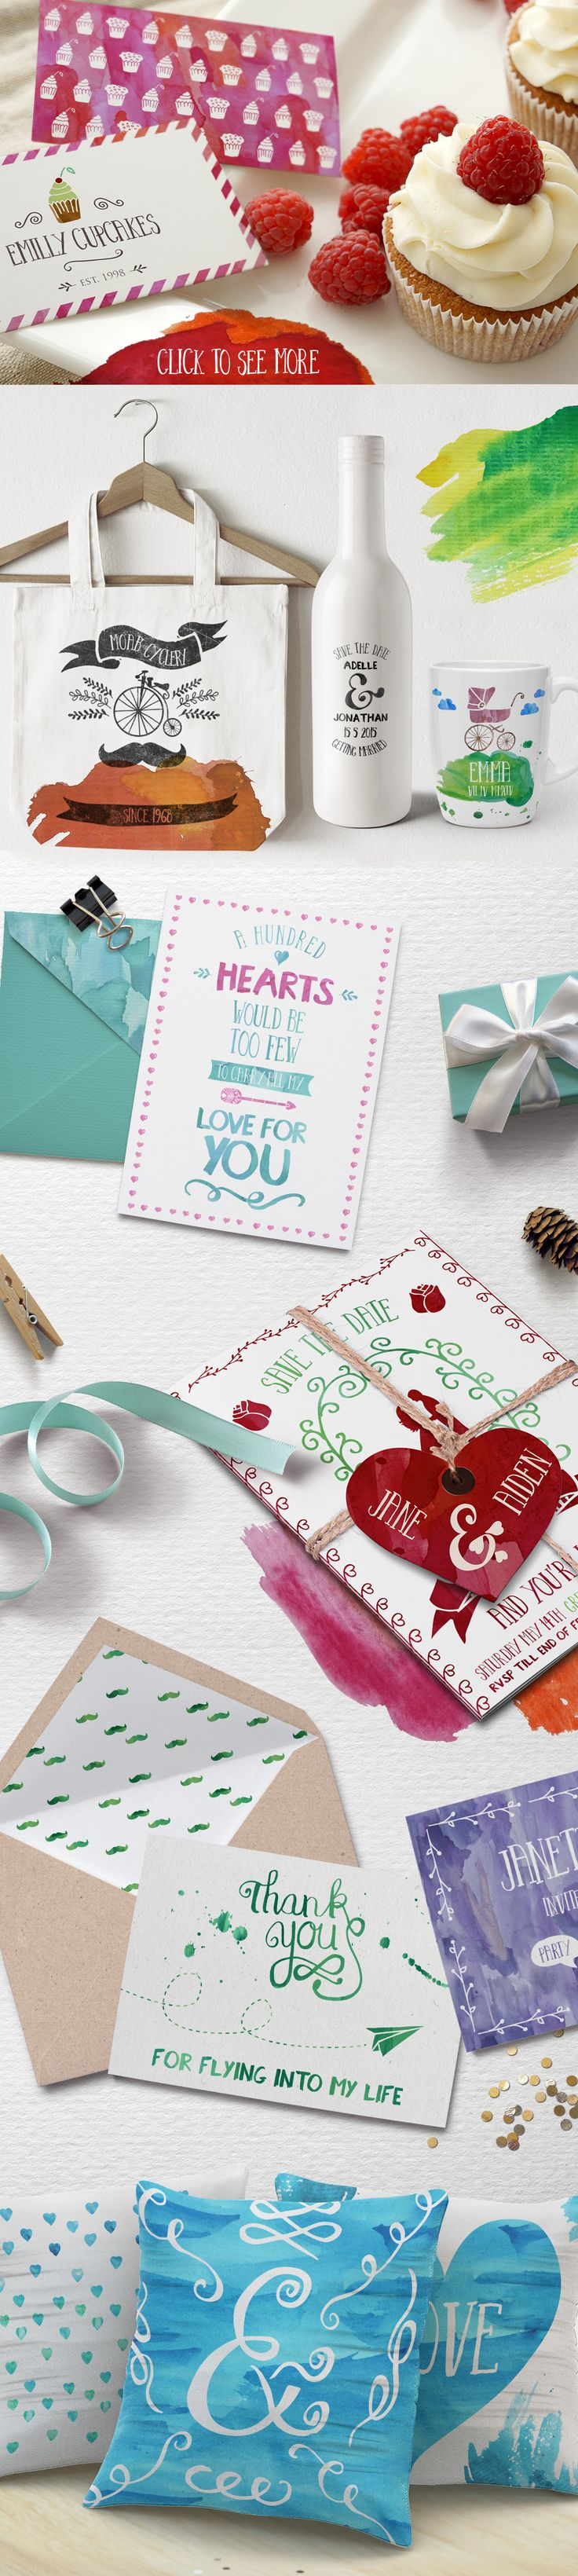 Wedding & Party Watercolour Bundle by fontgirl on Creative Market